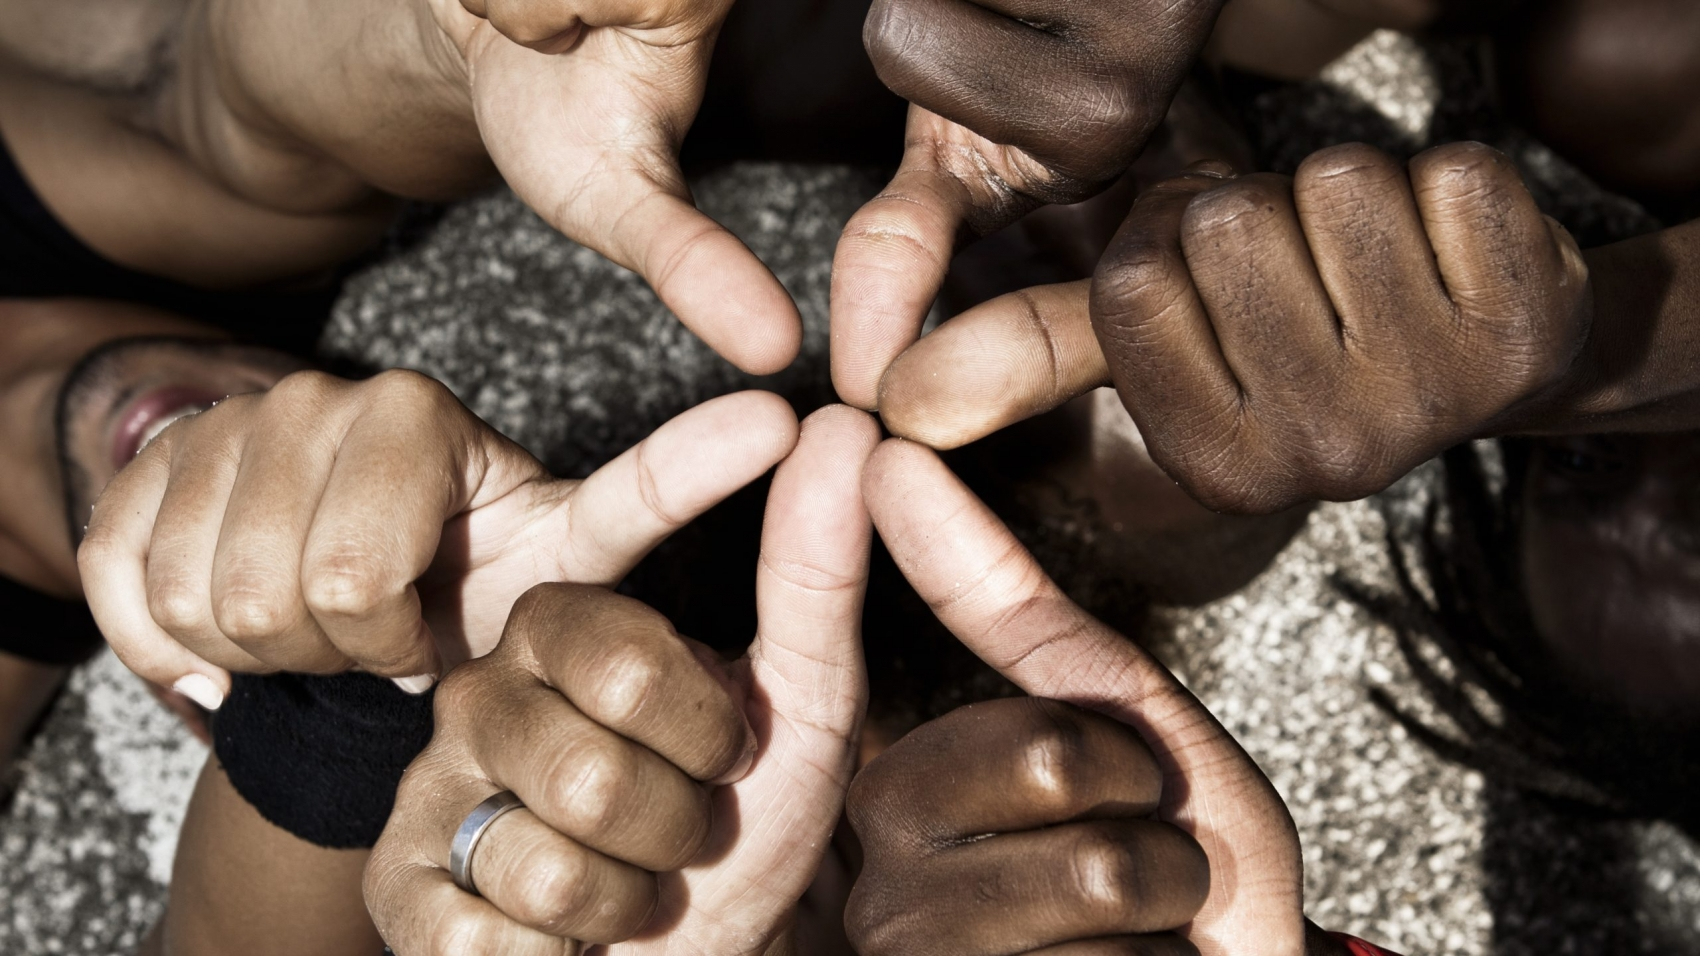 A group of mixed race people with hands doing thumbs up